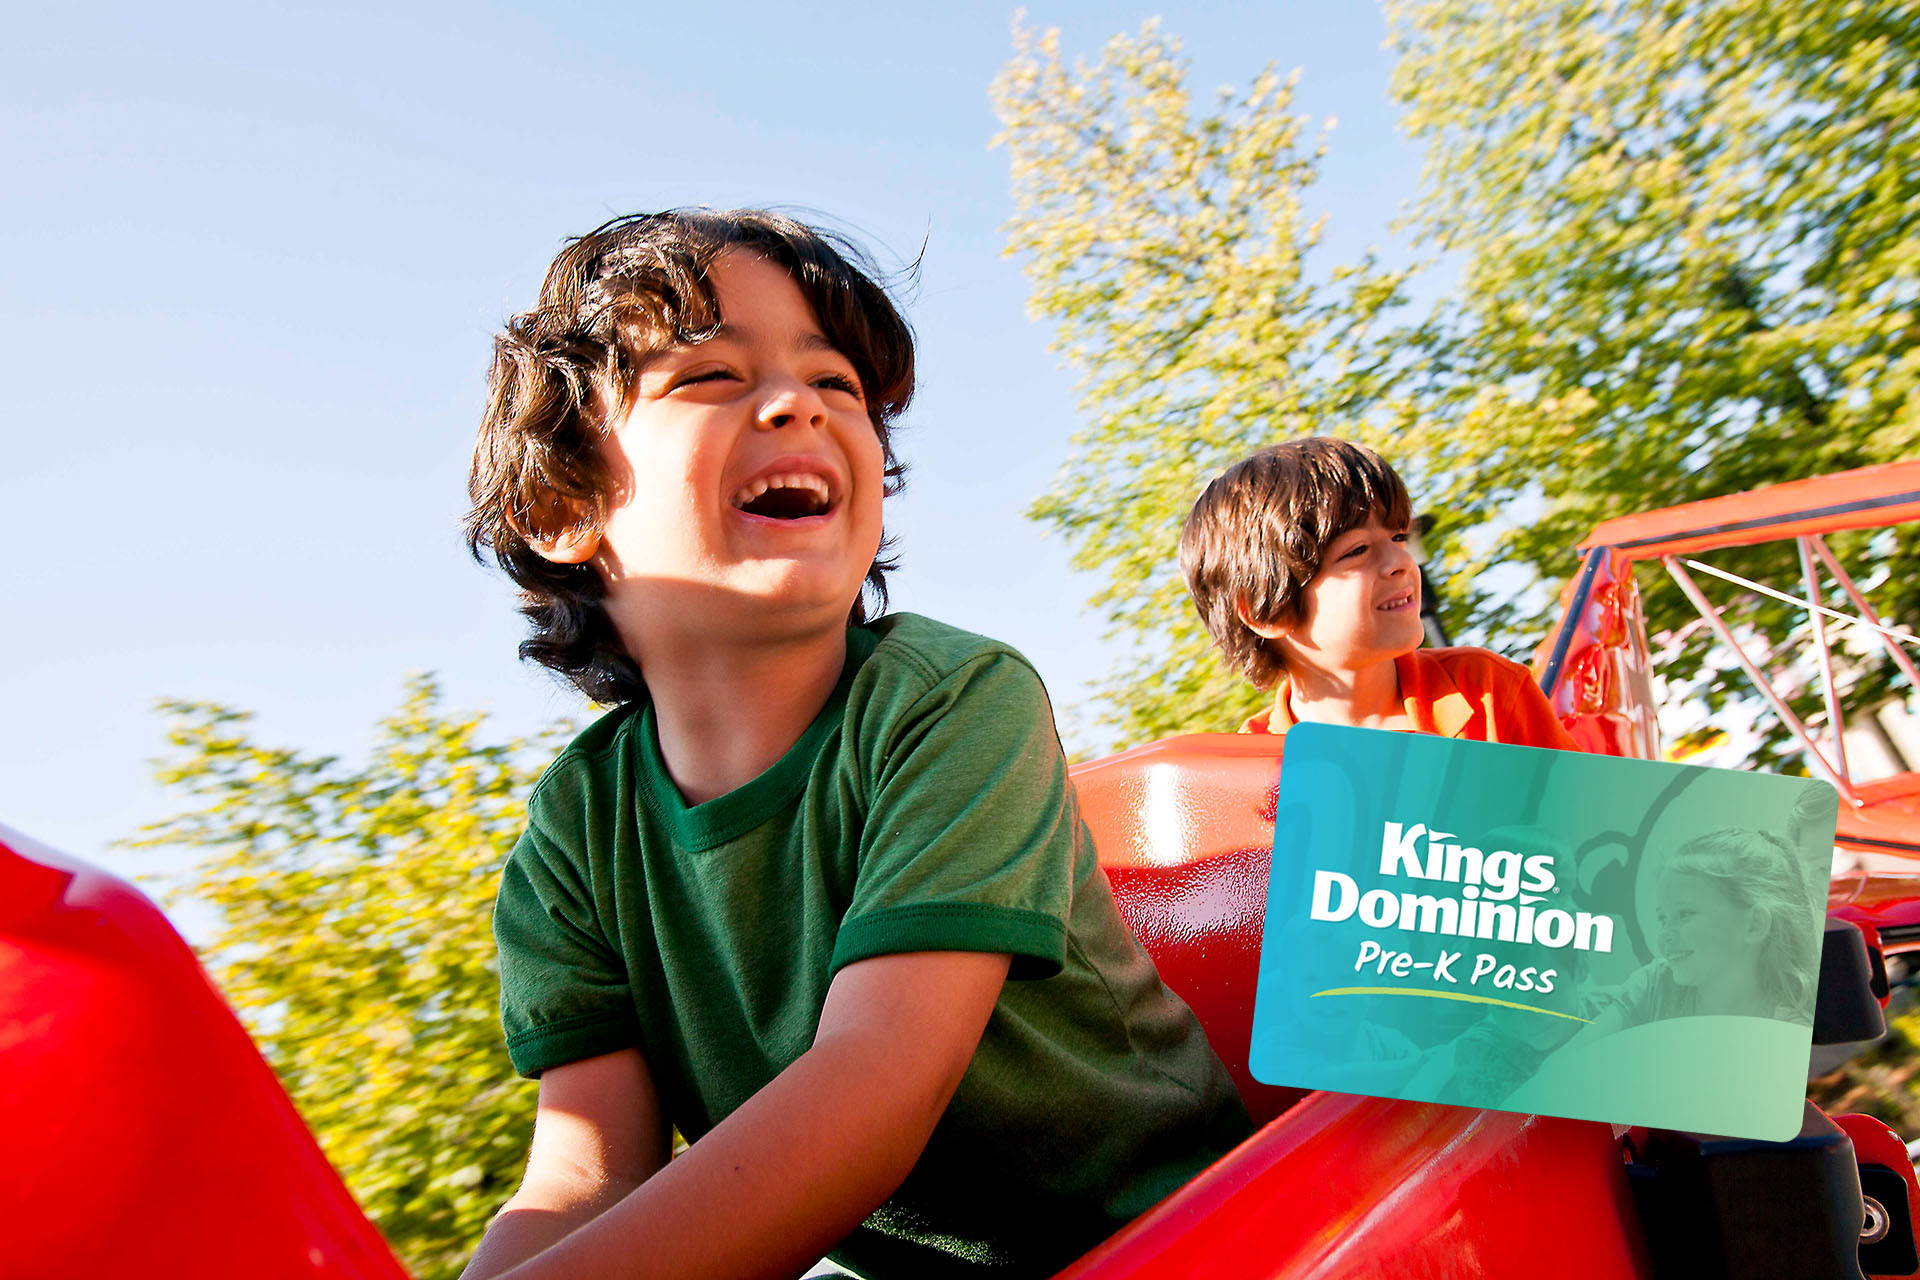 Kings dominion discount coupons - Getting Your Pre K Pass For Free Is As Easy As 1 2 3